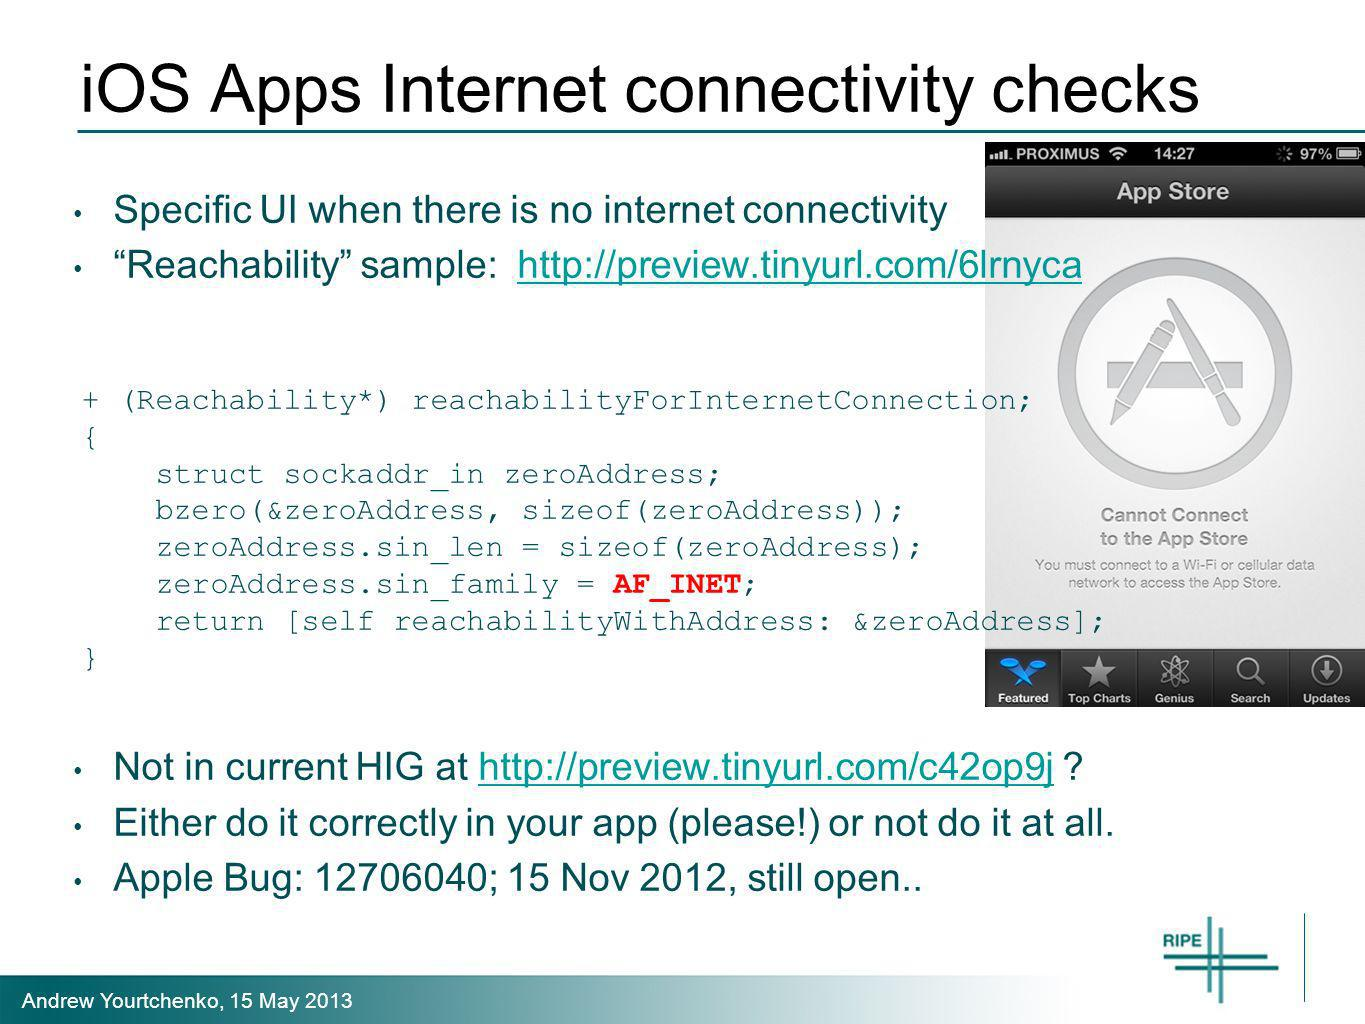 Andrew Yourtchenko, 15 May 2013 iOS Apps Internet connectivity checks Specific UI when there is no internet connectivity Reachability sample: http://preview.tinyurl.com/6lrnycahttp://preview.tinyurl.com/6lrnyca Not in current HIG at http://preview.tinyurl.com/c42op9j http://preview.tinyurl.com/c42op9j Either do it correctly in your app (please!) or not do it at all.